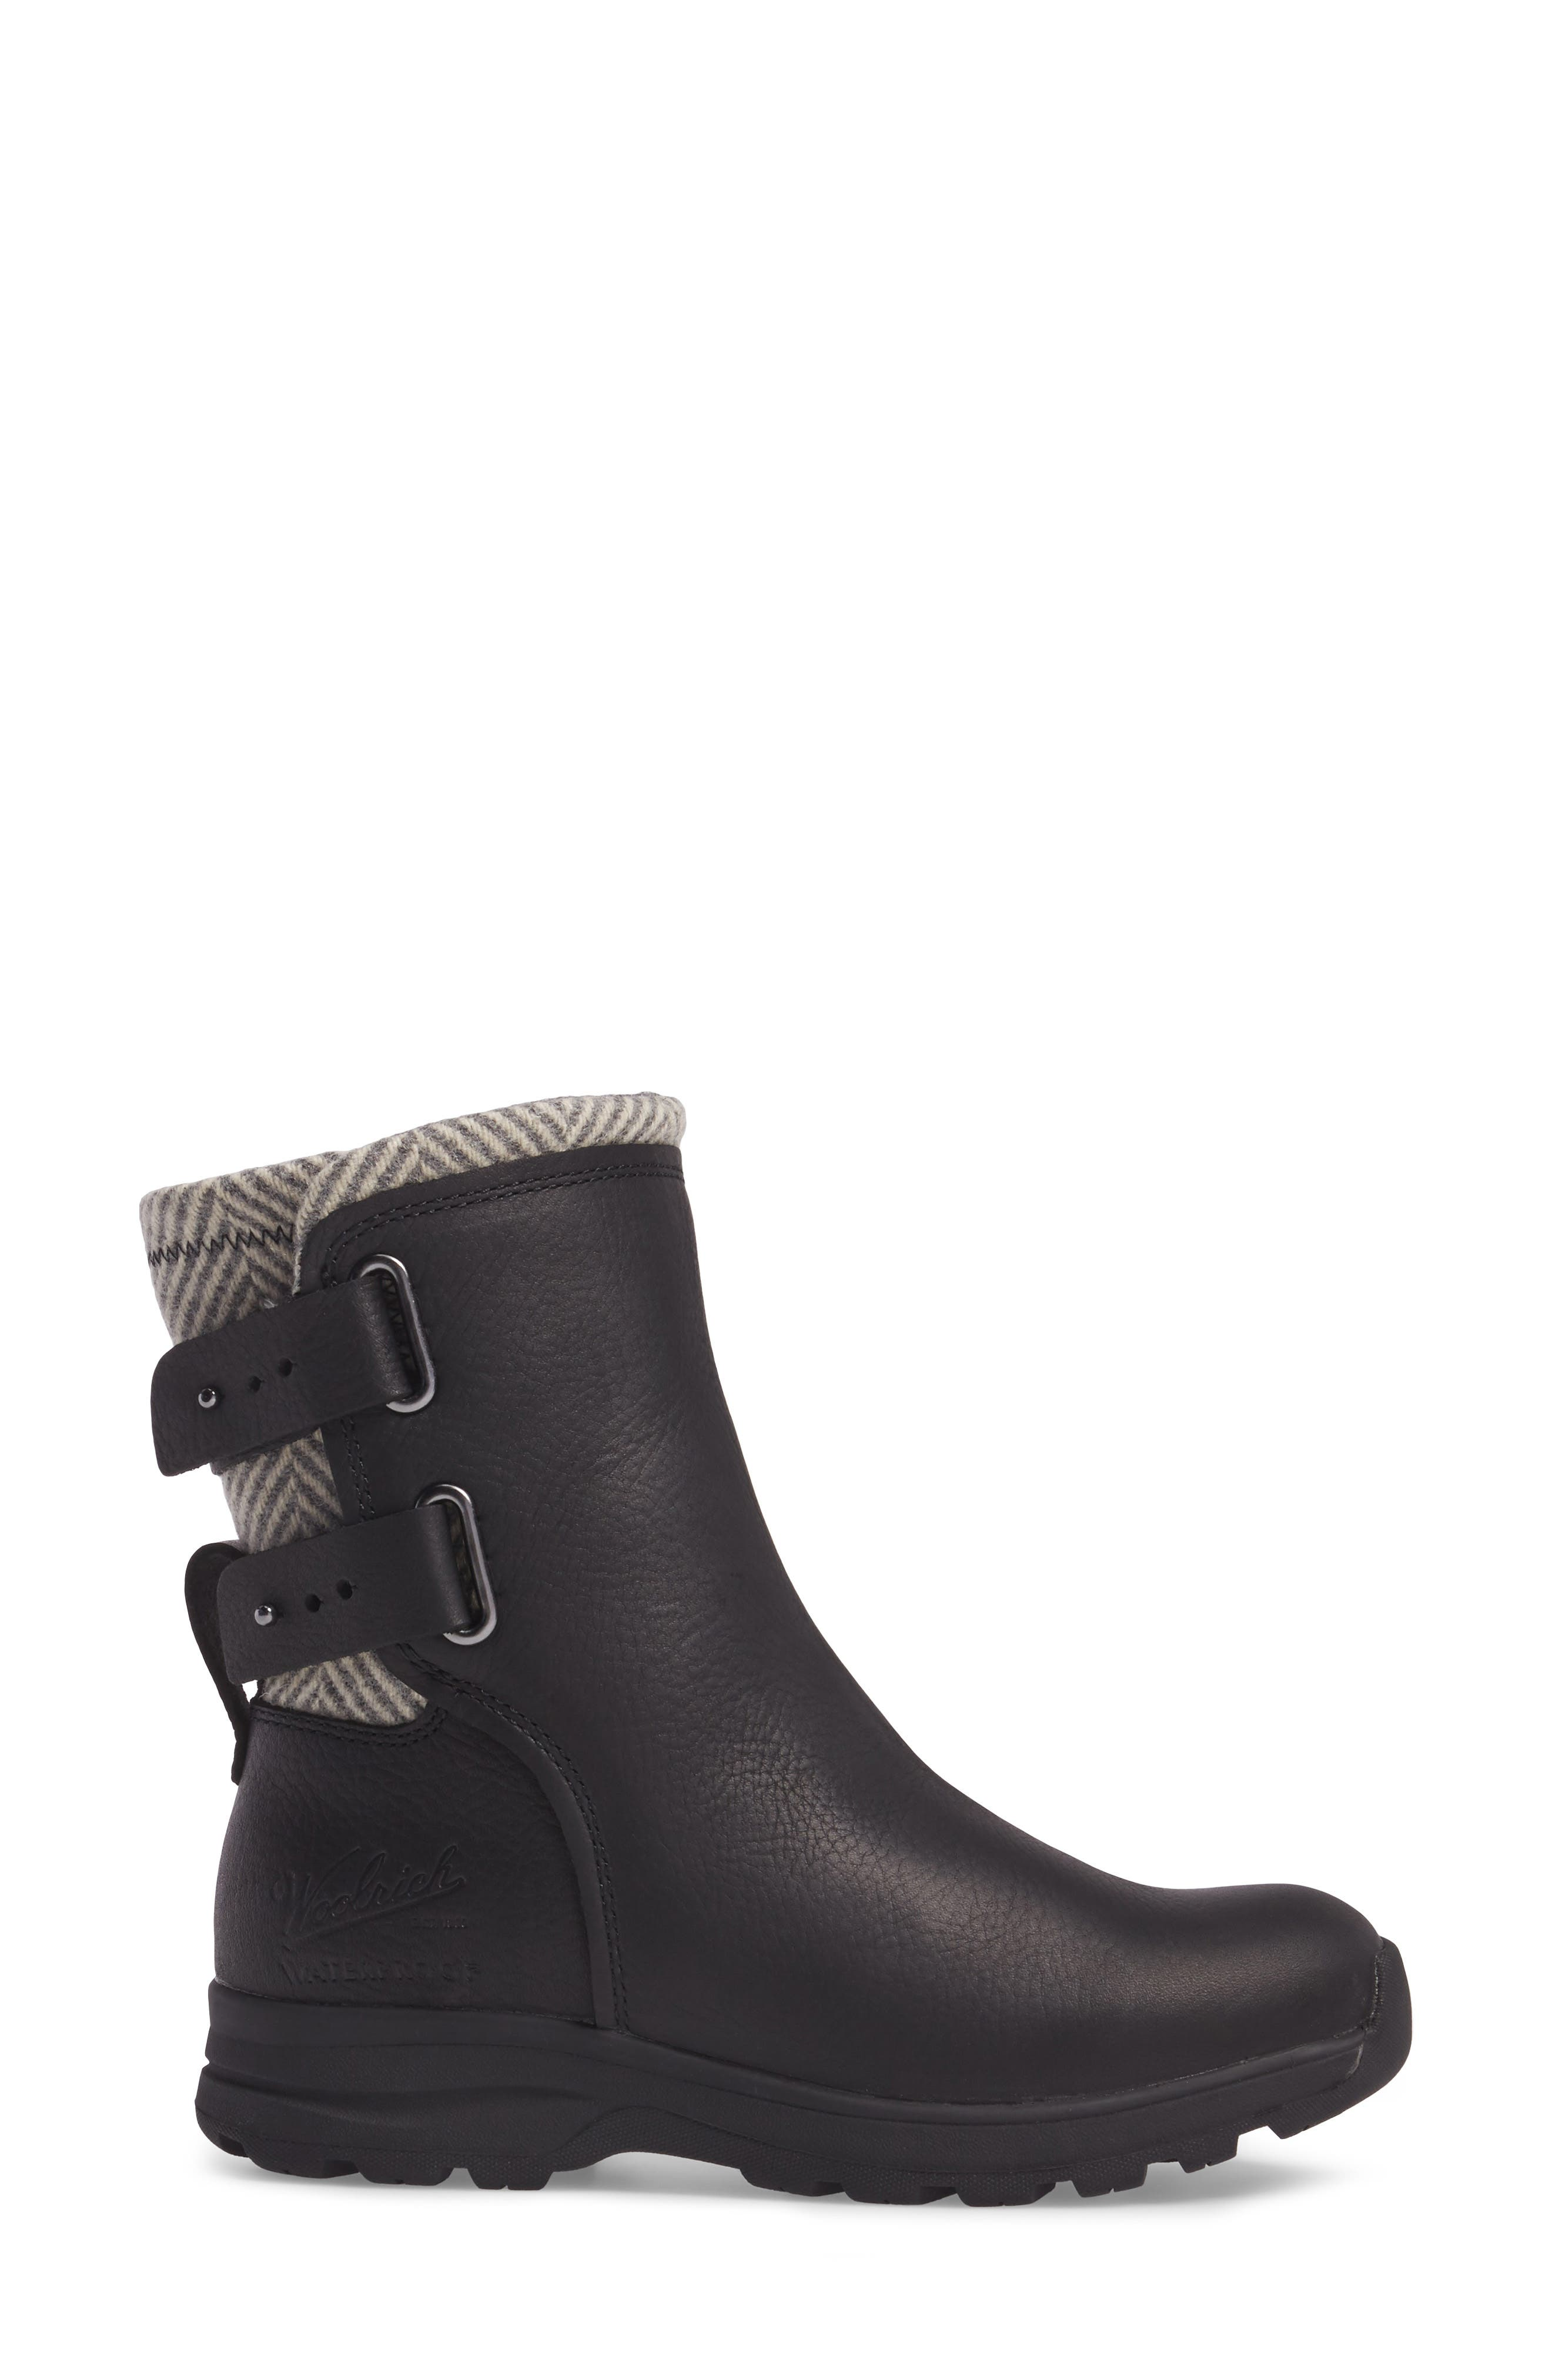 Koosa Waterproof Boot,                             Alternate thumbnail 3, color,                             Black Leather/ Herringbone